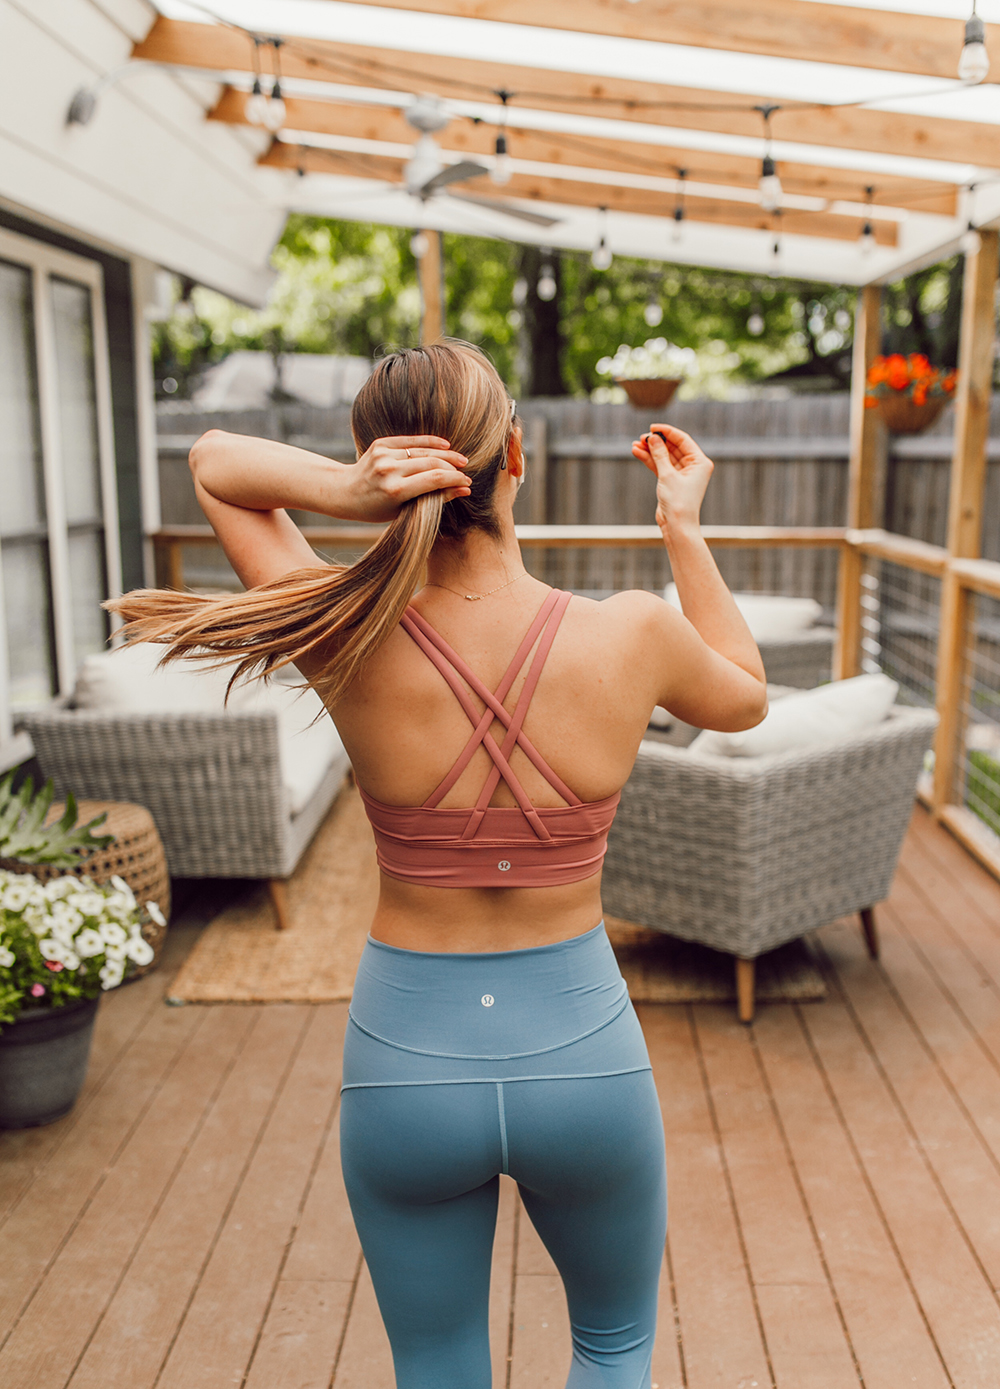 livvyland-blog-olivia-watson-austin-texas-lifestyle-blogger-lululemon-in-movement-leggings-long-lines-energy-bra-postpartum-workout-routine-6